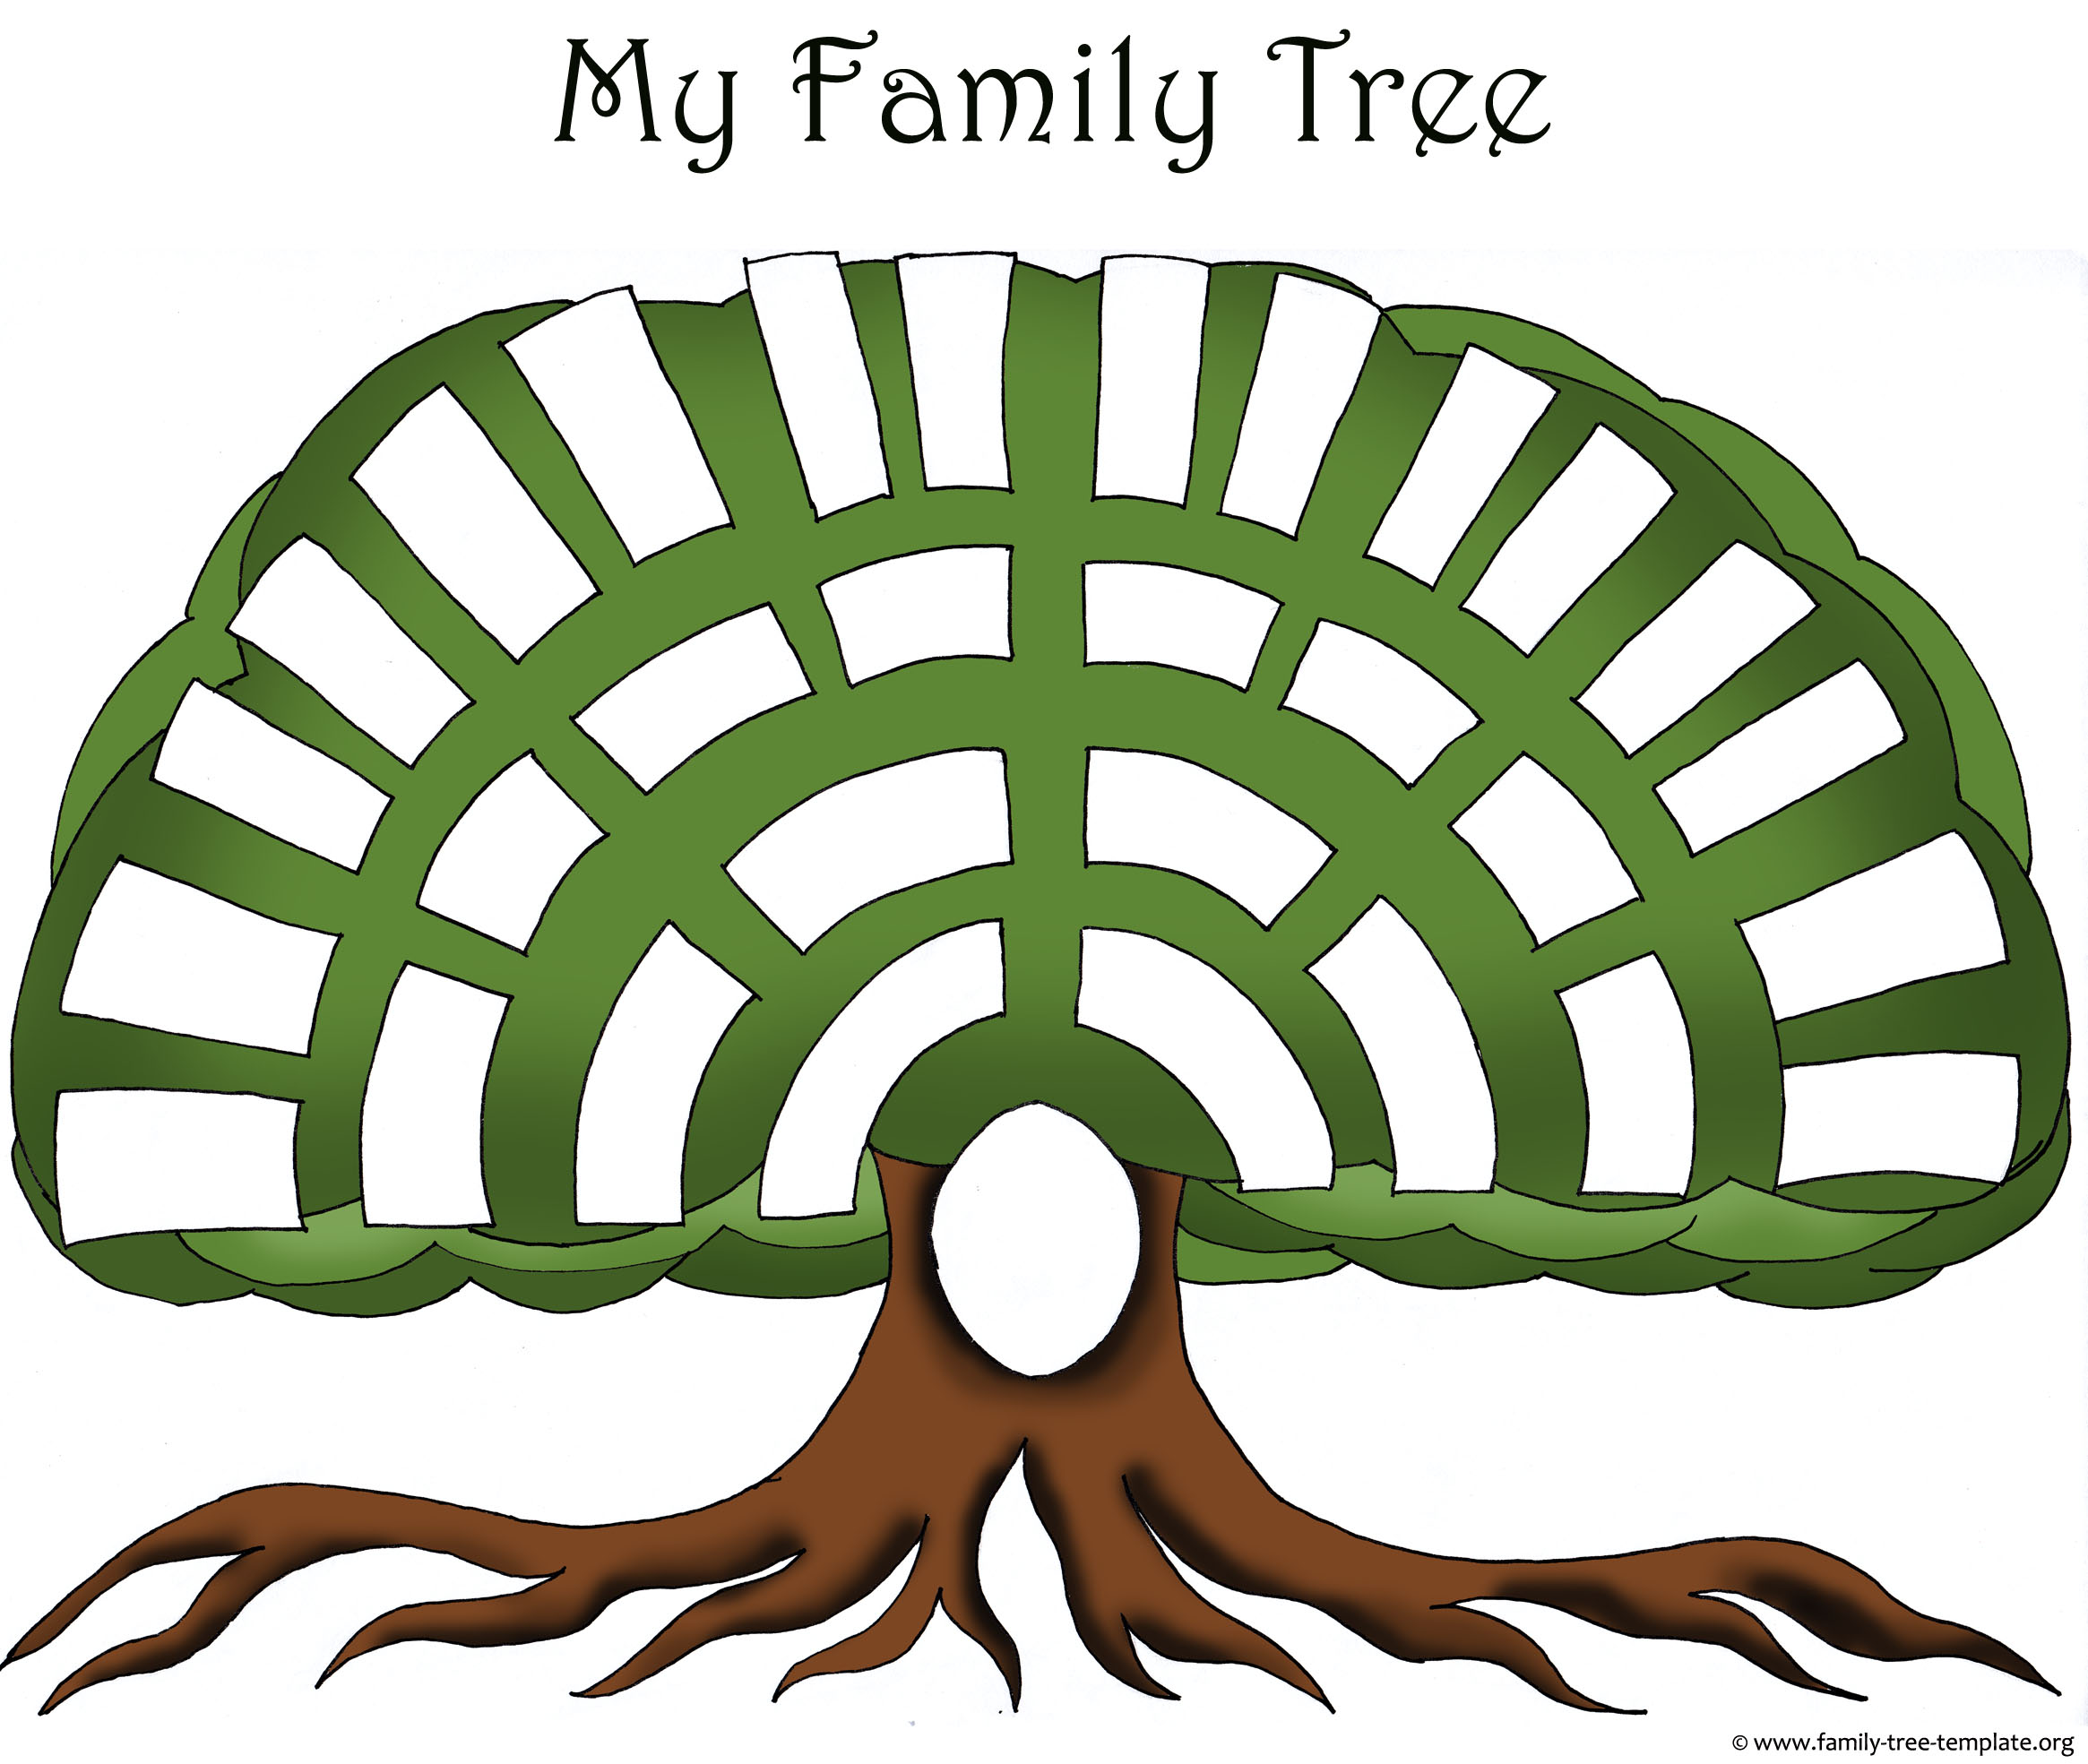 Creative homemade family tree design template with space for great ...